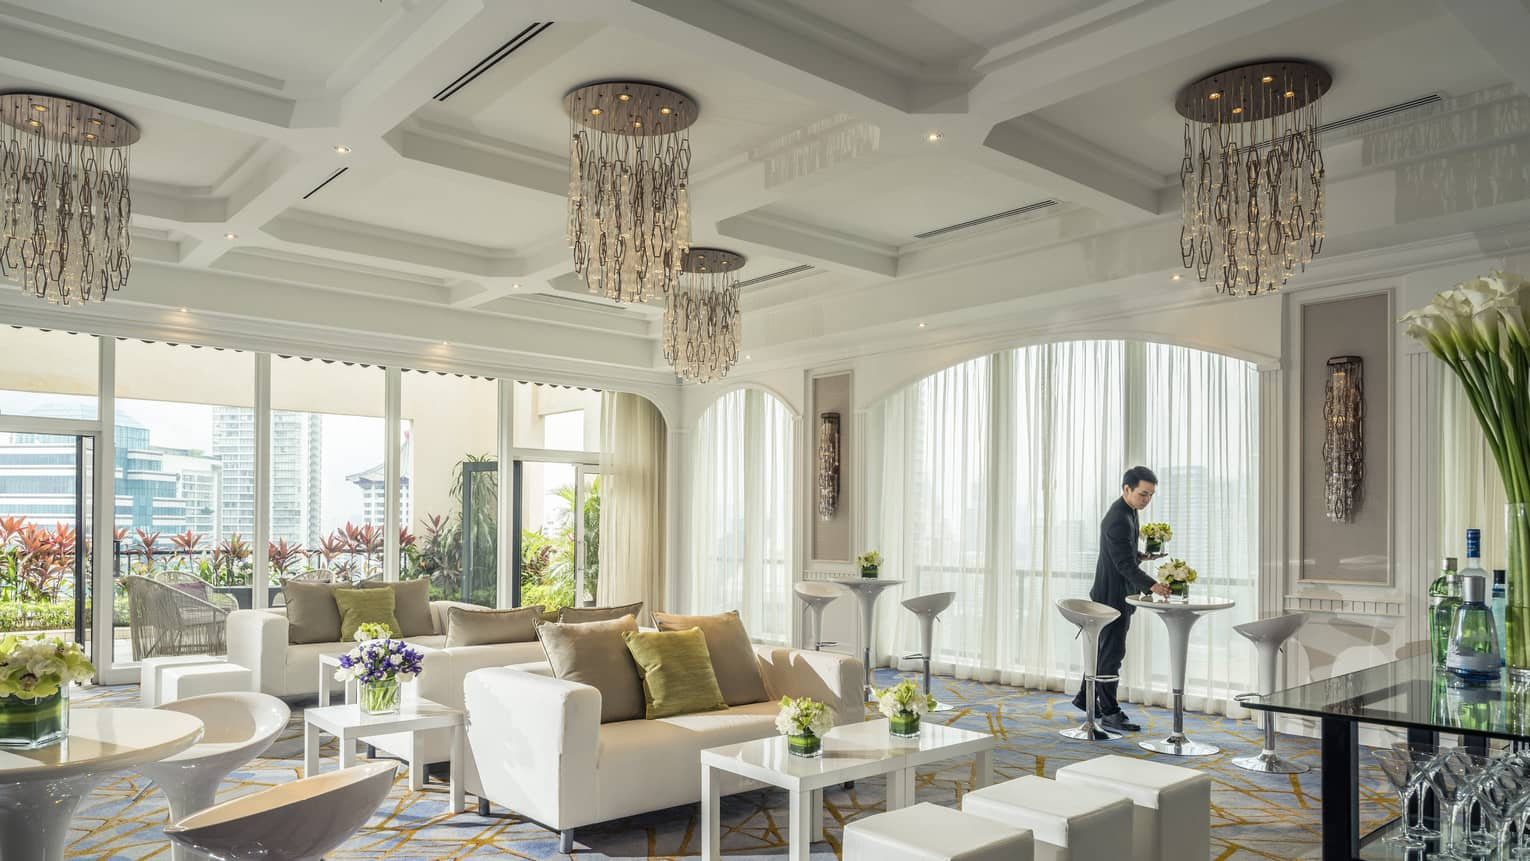 A bright room is decorated with plush couches, tables with flowers and artistic chandeliers